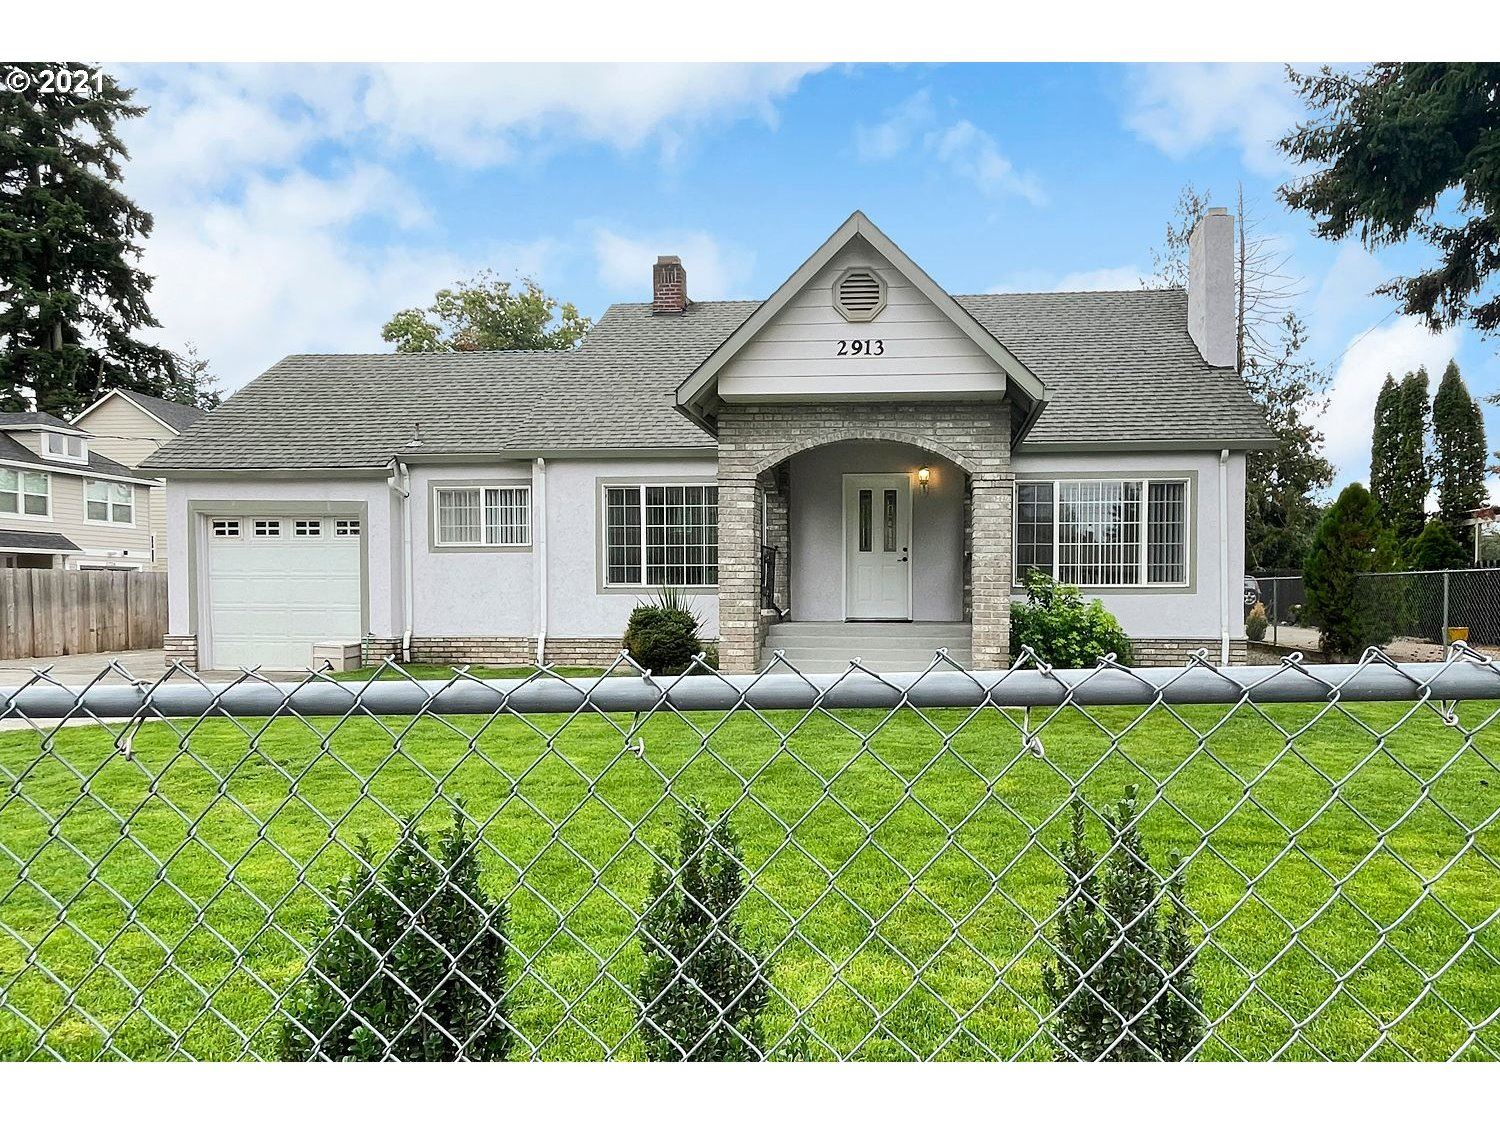 2913 SE 118TH AVE, Portland, OR 97266 - MLS#: 21319341